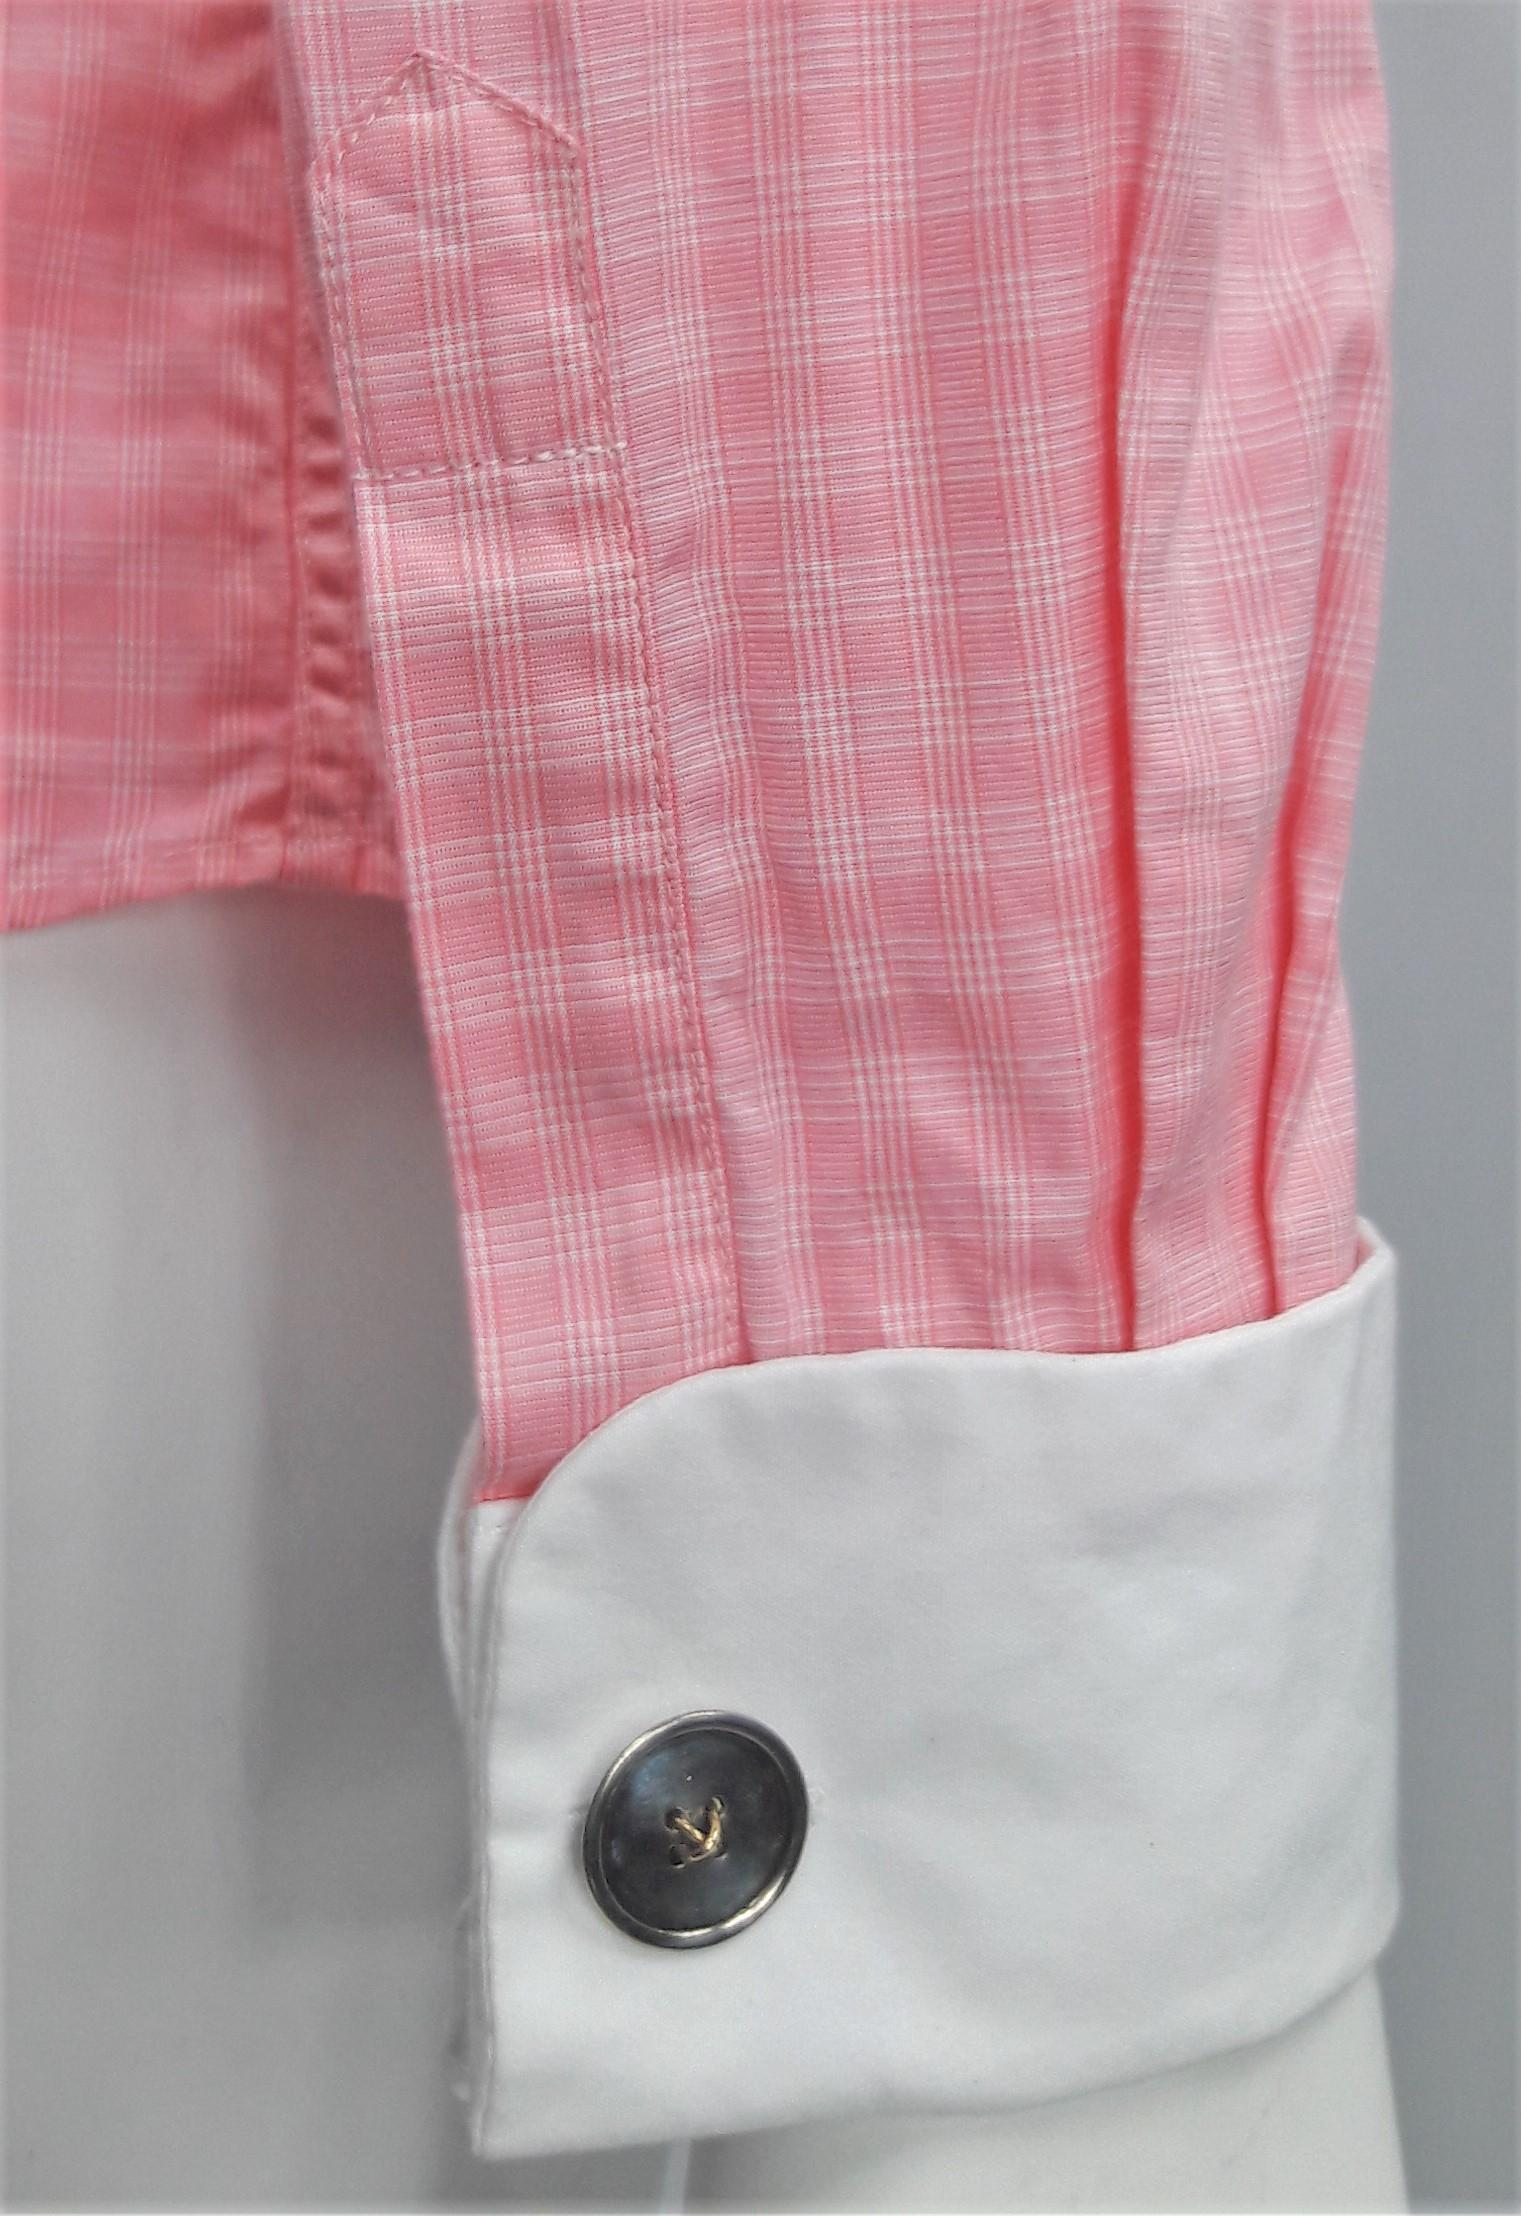 Tm Lewin Review >> T.m. Lewin Pink Cotton Plaid L/S Shirt W/ White Peter Pan Collar/Cuff Button-down Top Size 4 (S ...